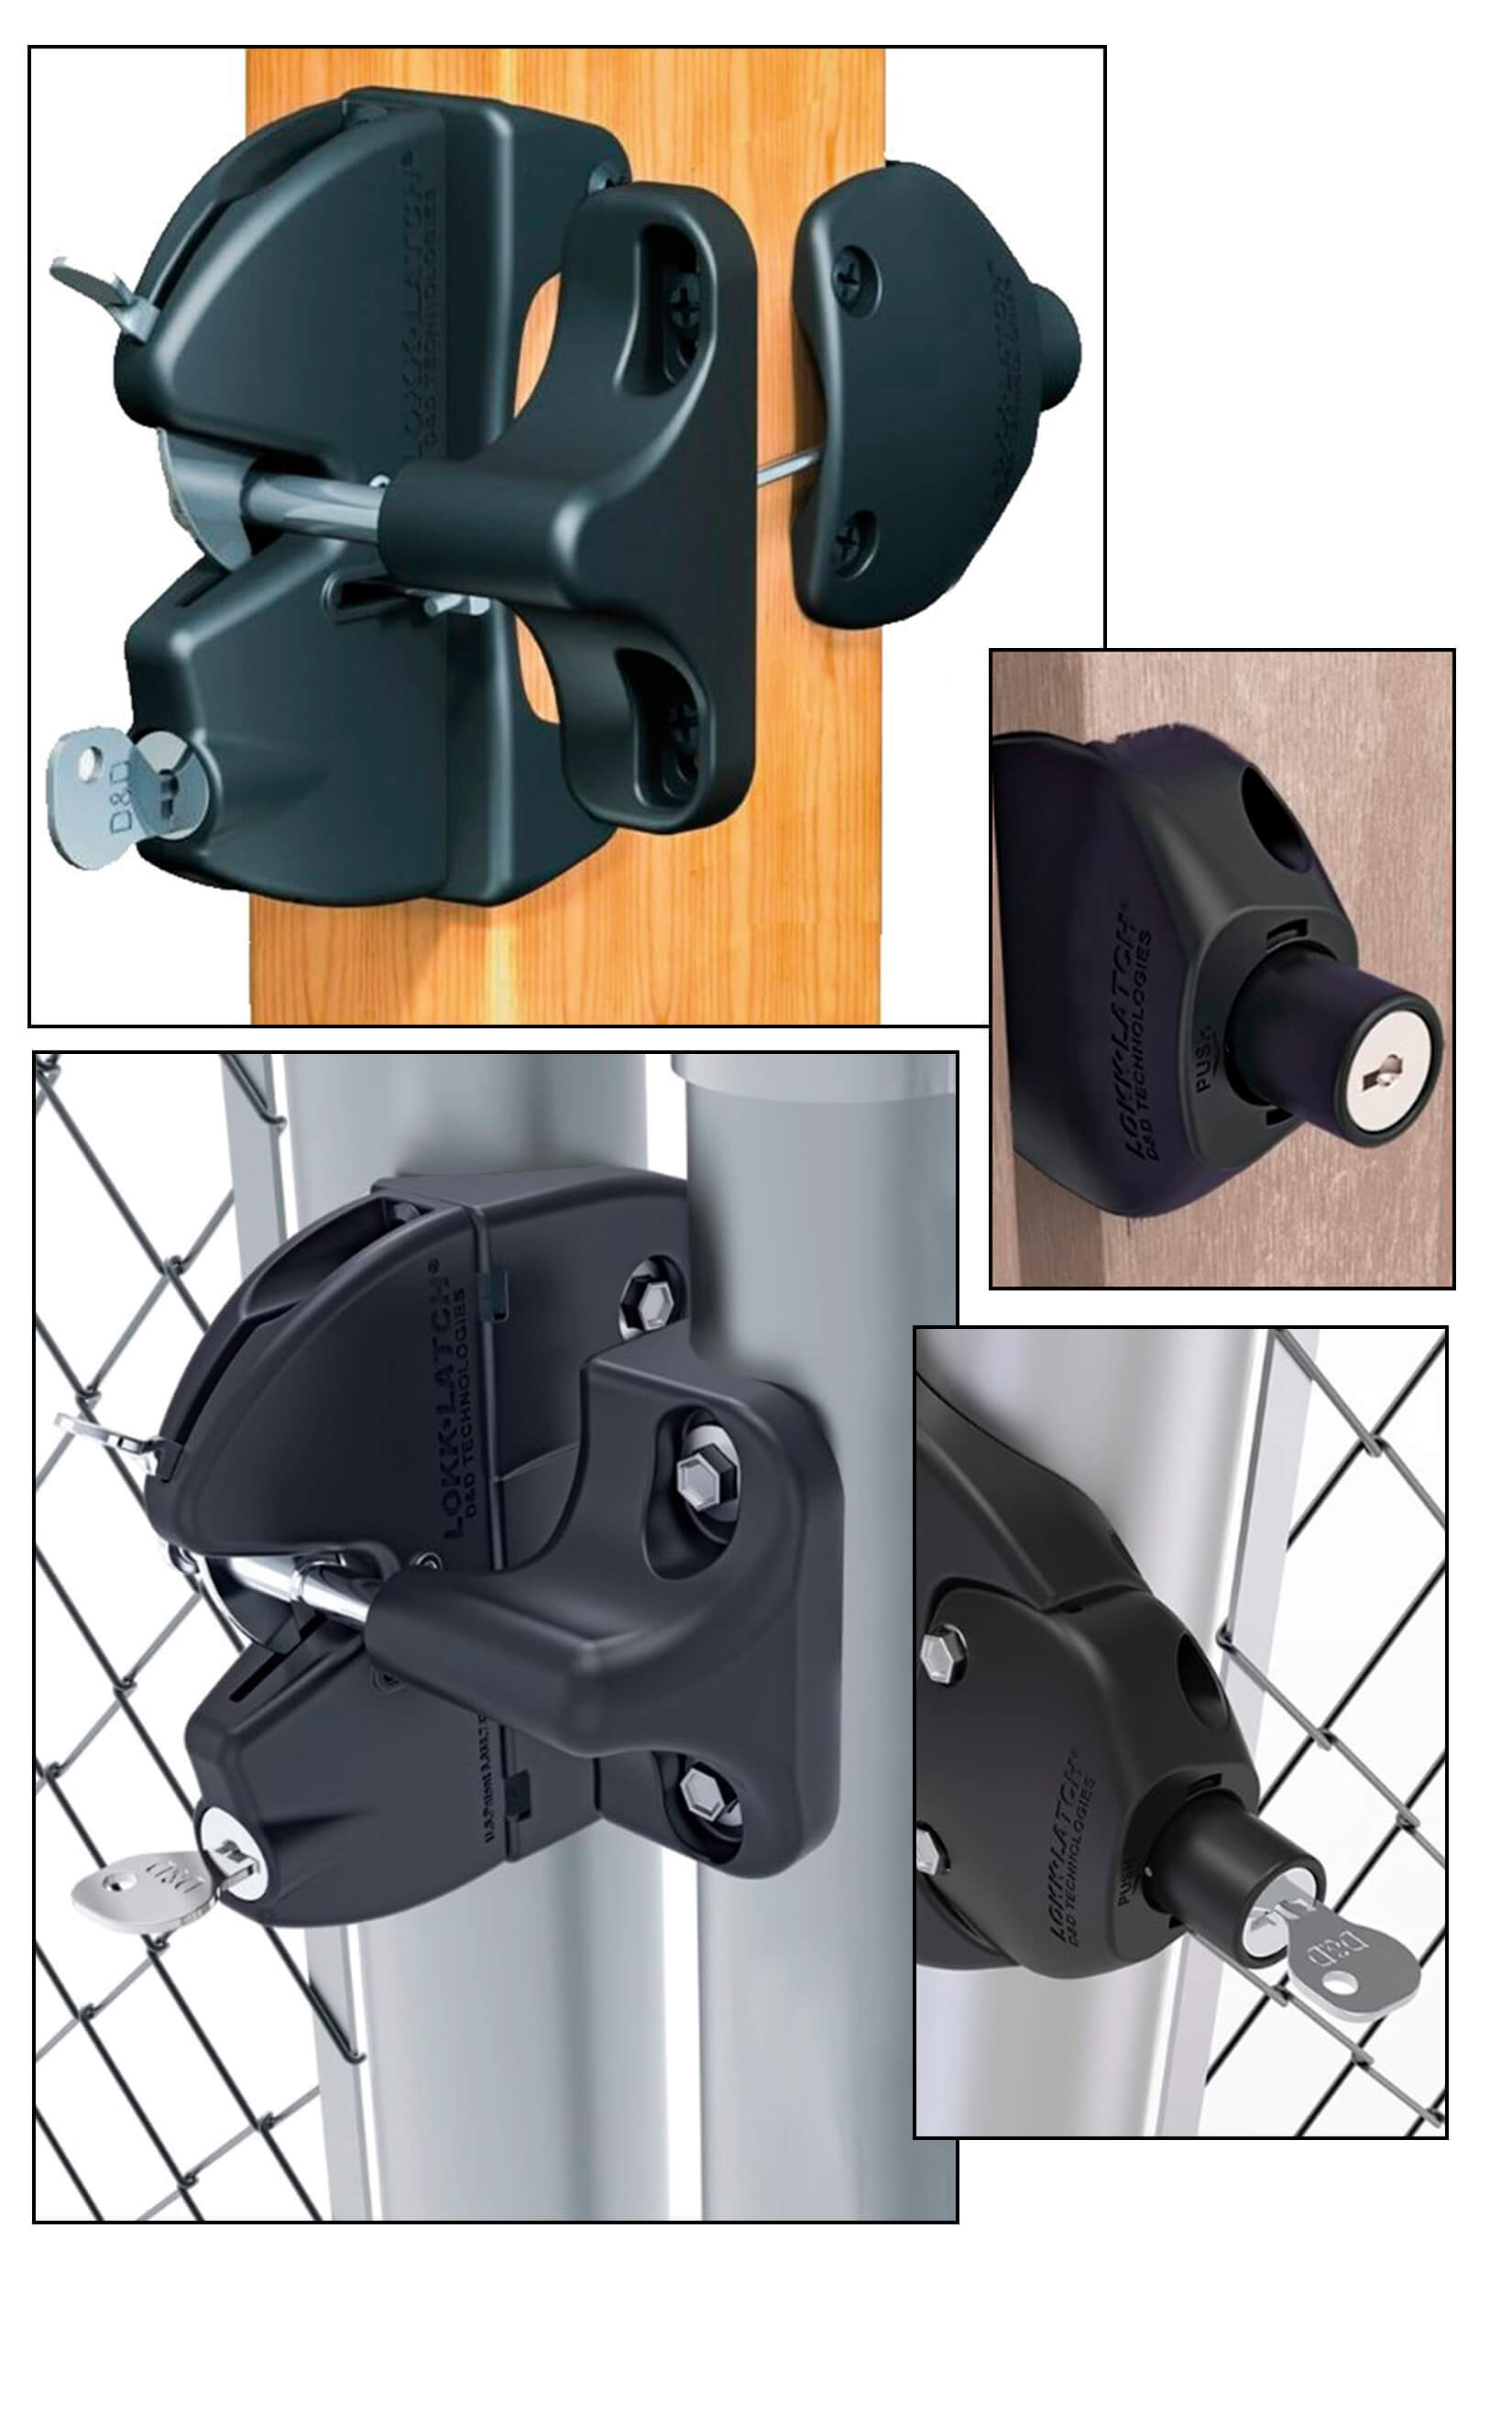 lokklatch chain link fence latch with a double sided lock and key function